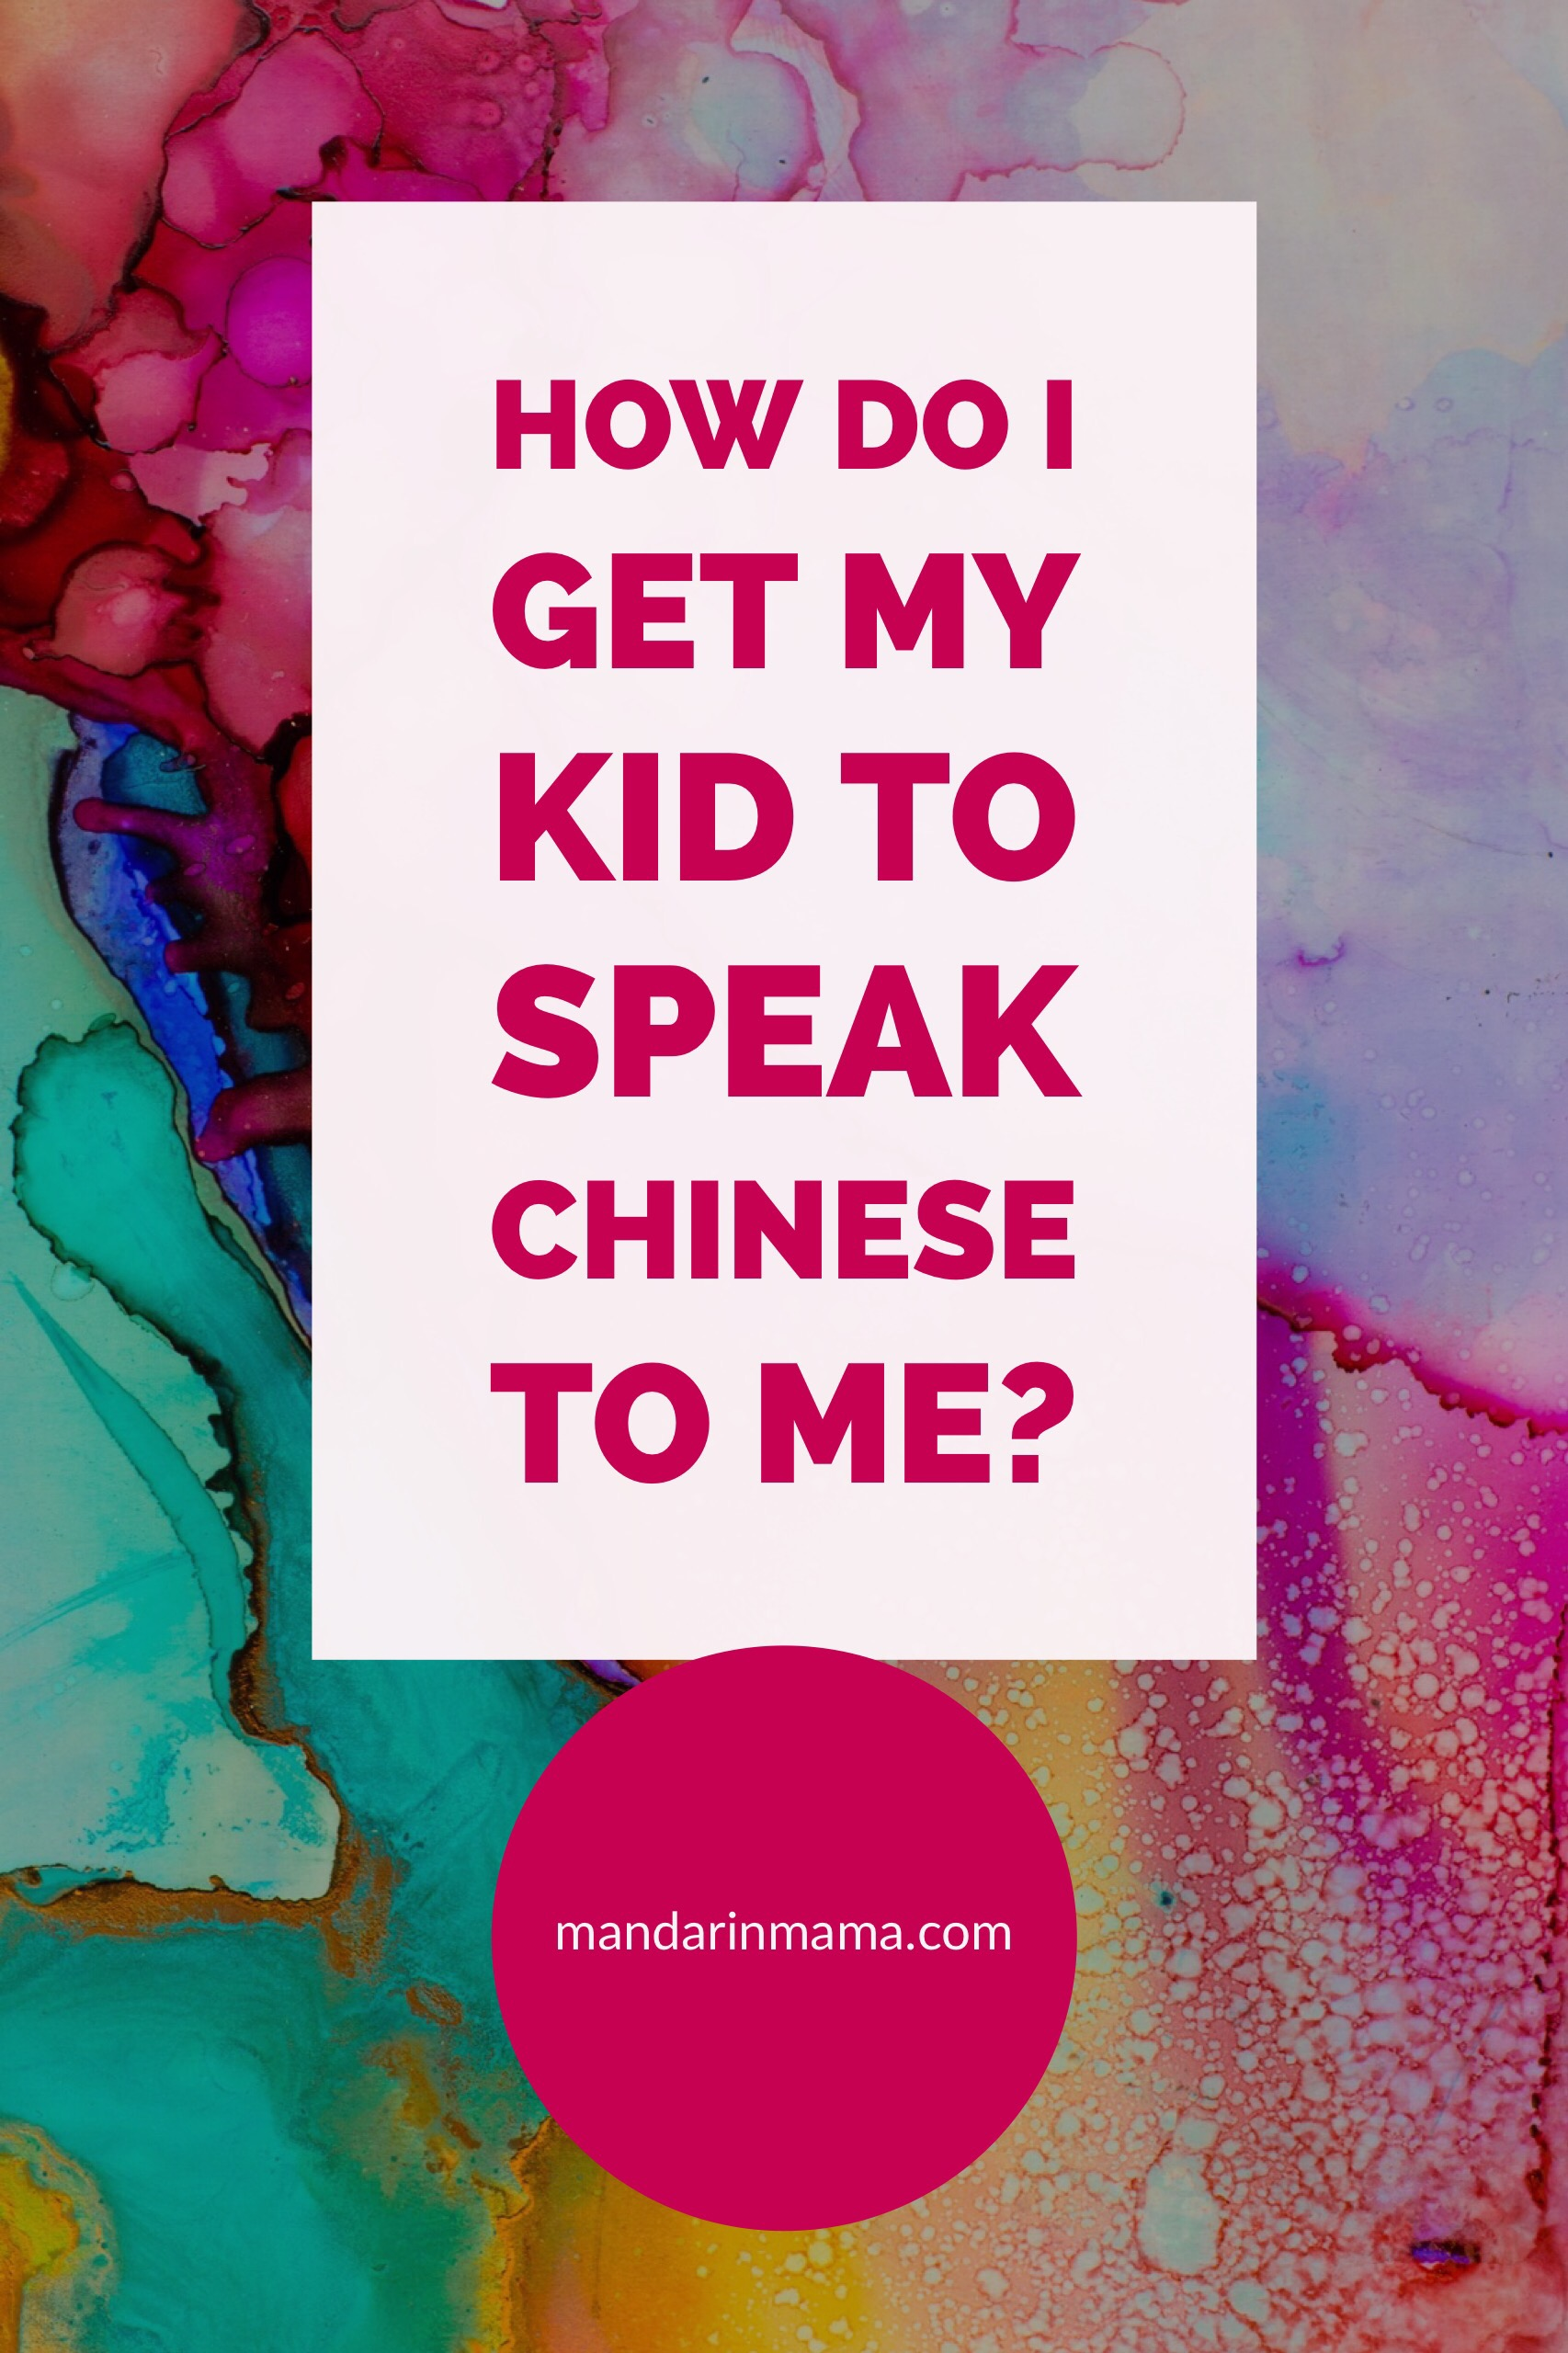 How Do I Get My Kid to Speak Chinese to Me?